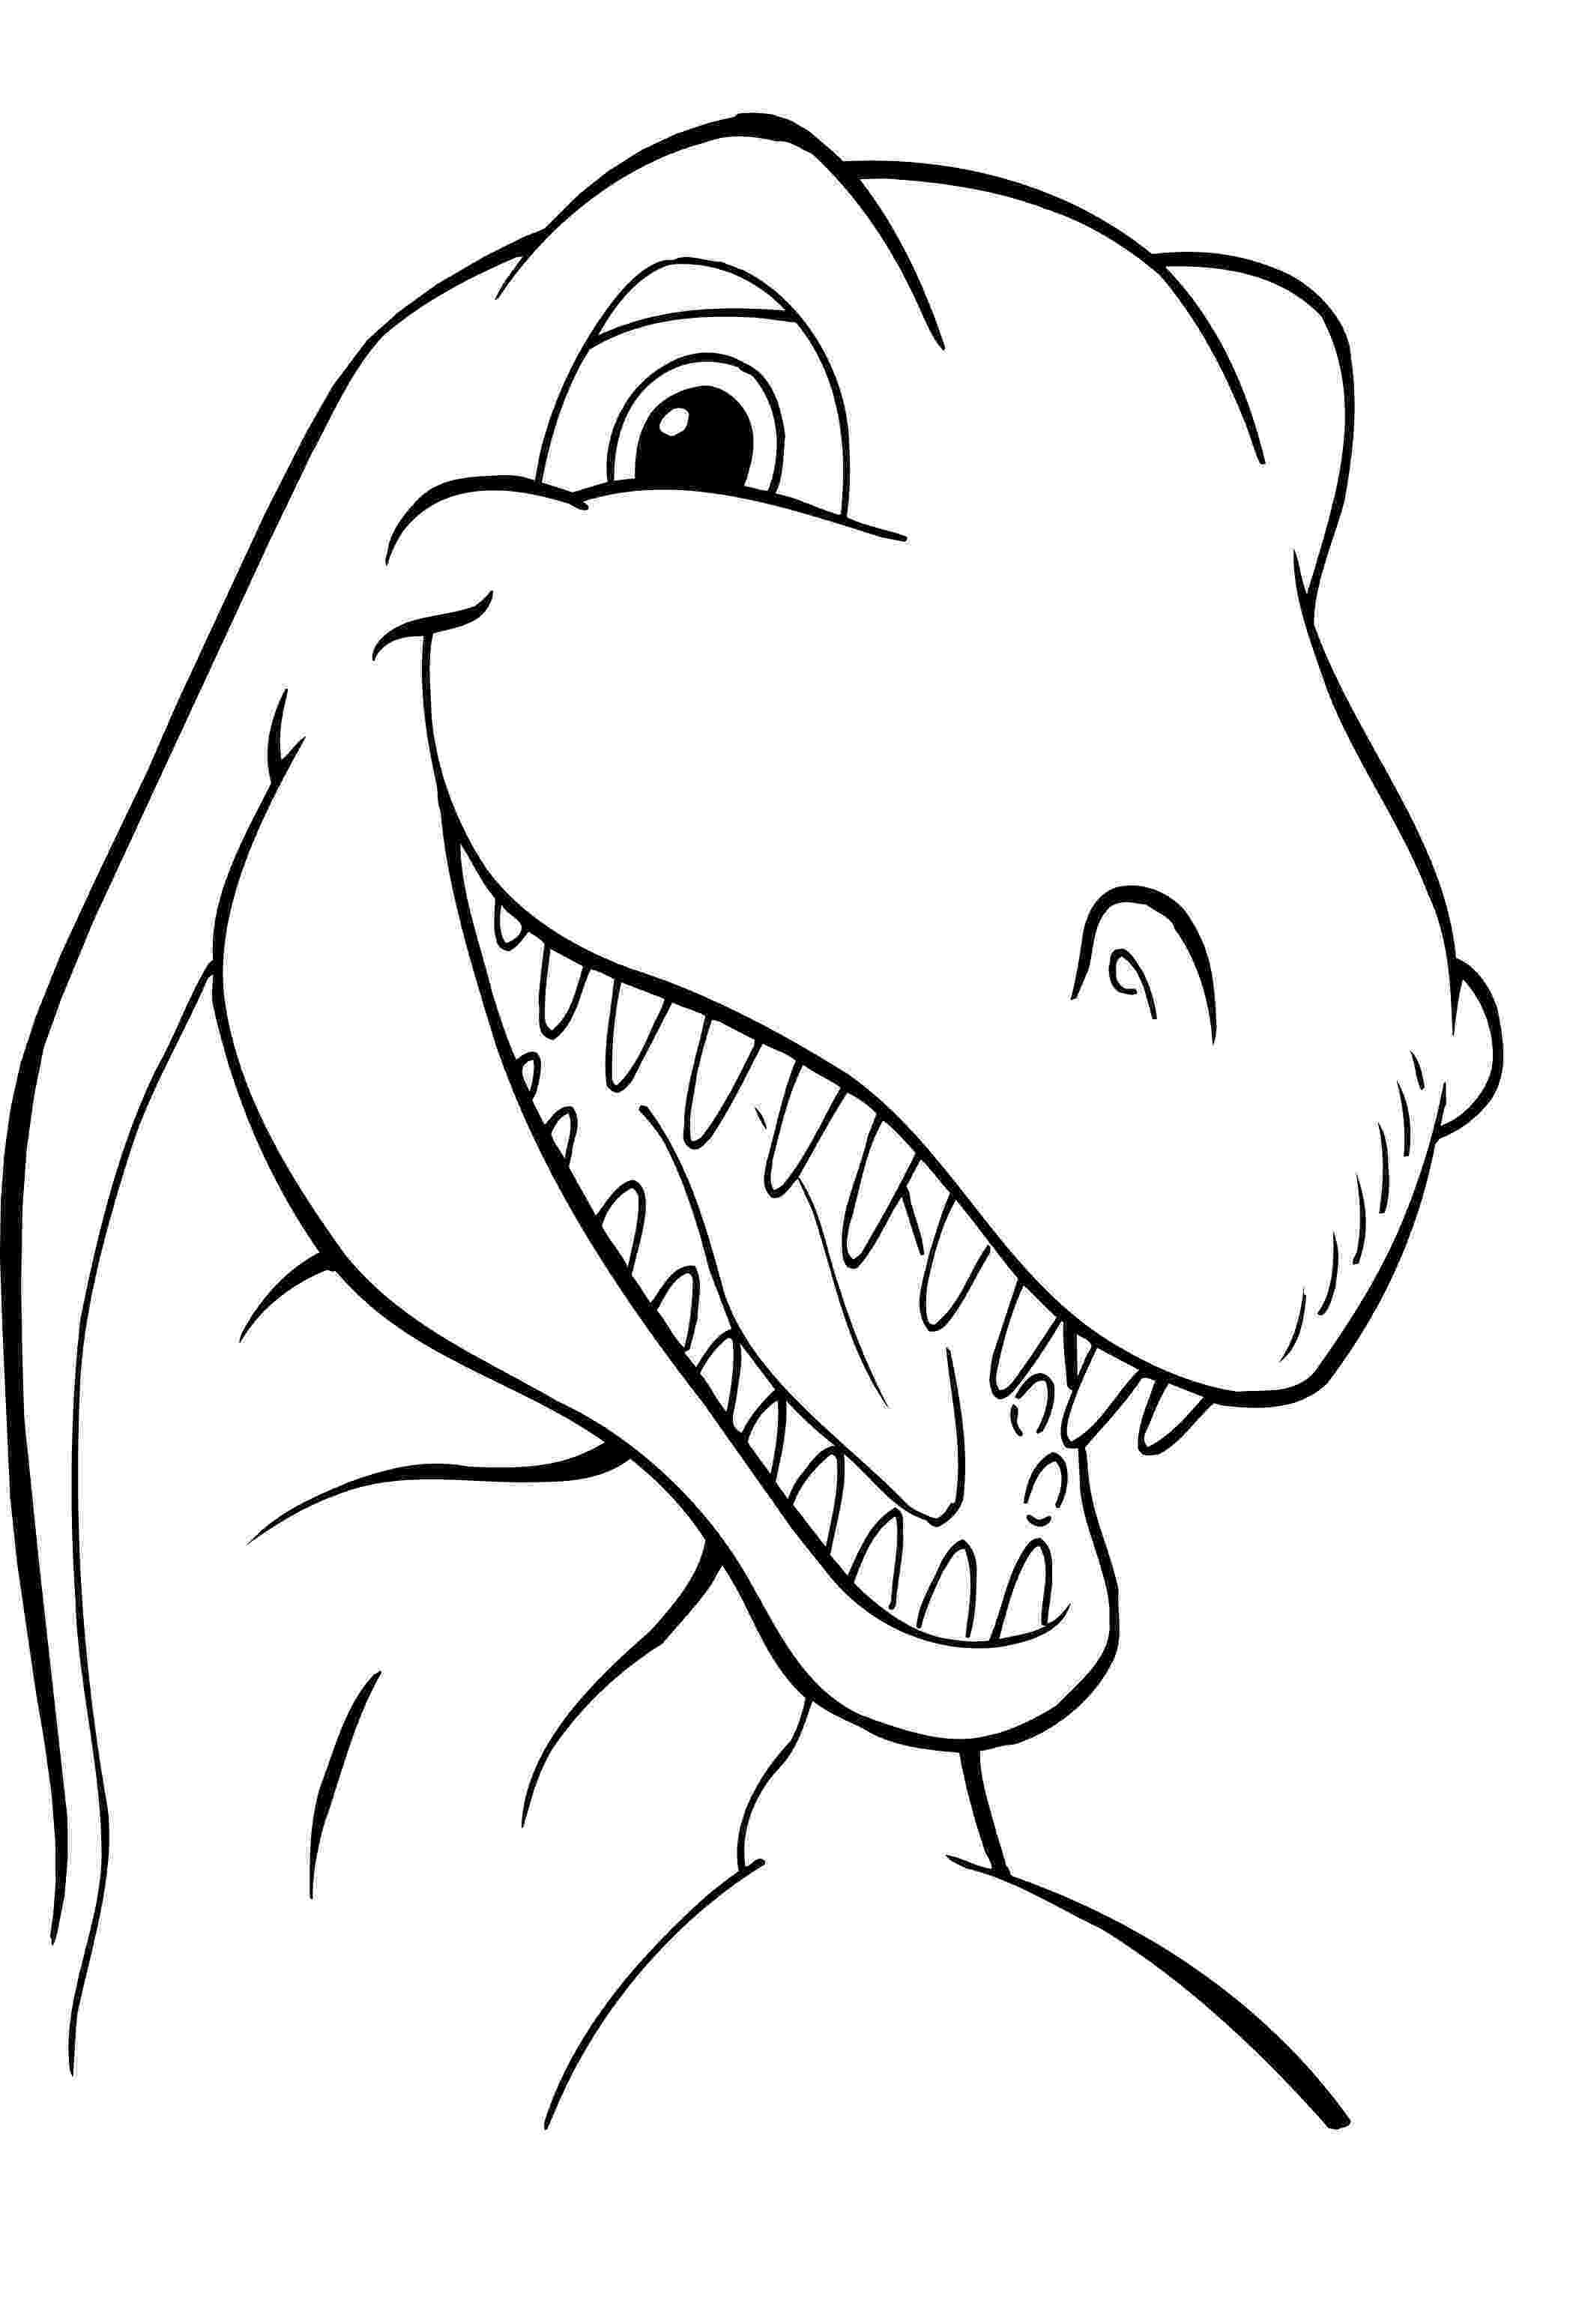 dinosaur colouring page free printable dinosaur coloring pages for kids dinosaur page colouring